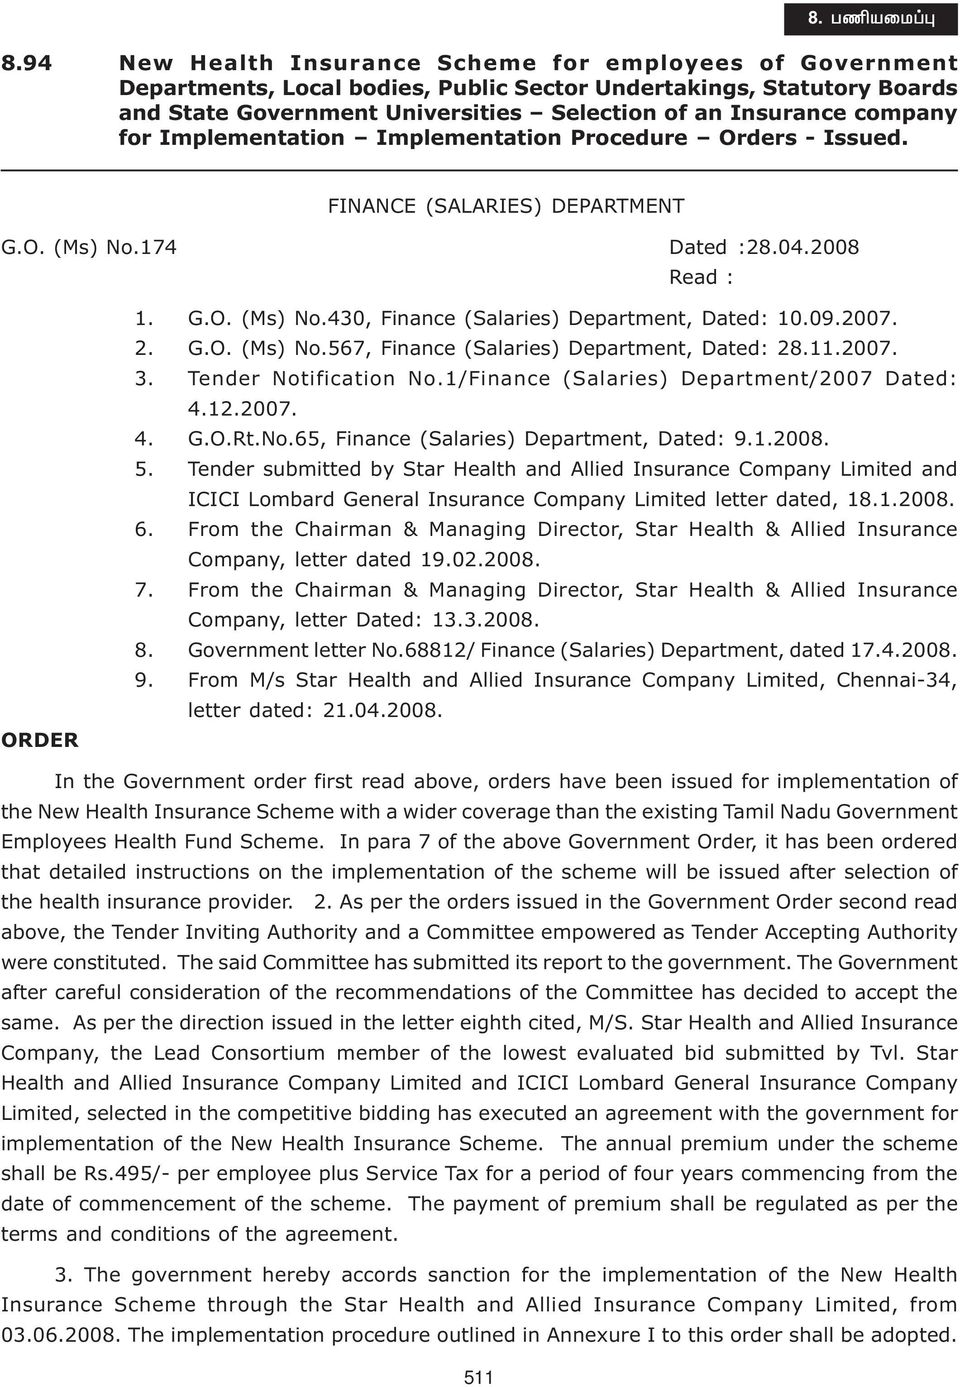 09.2007. 2. G.O. (Ms) No.567, Finance (Salaries) Department, Dated: 28.11.2007. 3. Tender Notification No.1/Finance (Salaries) Department/2007 Dated: 4.12.2007. 4. G.O.Rt.No.65, Finance (Salaries) Department, Dated: 9.